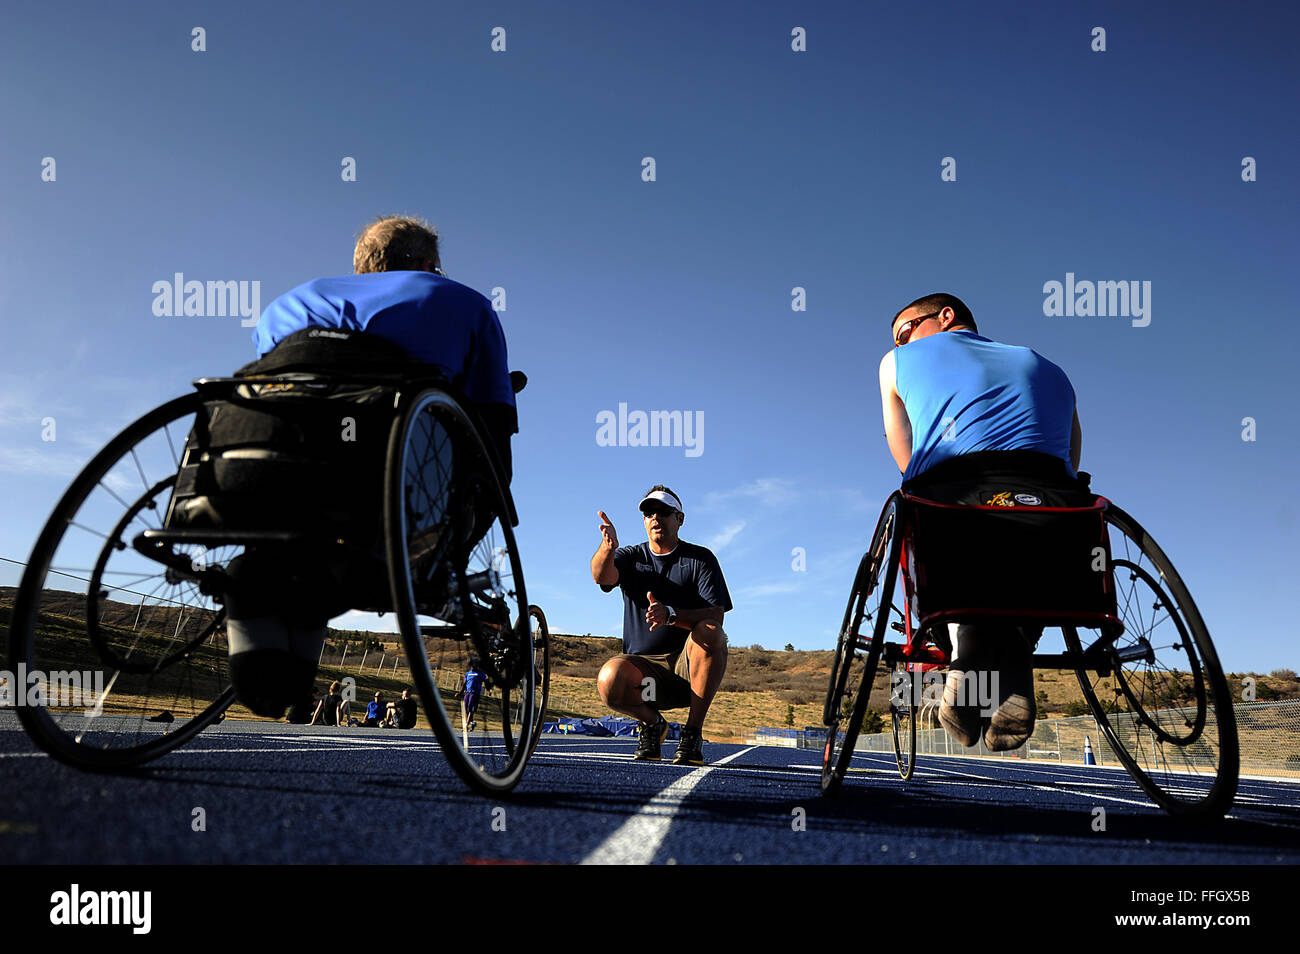 Former Senior Airman Jeff Odom listens to his coach before racing laps in his race chair at the Air Force team's - Stock Image